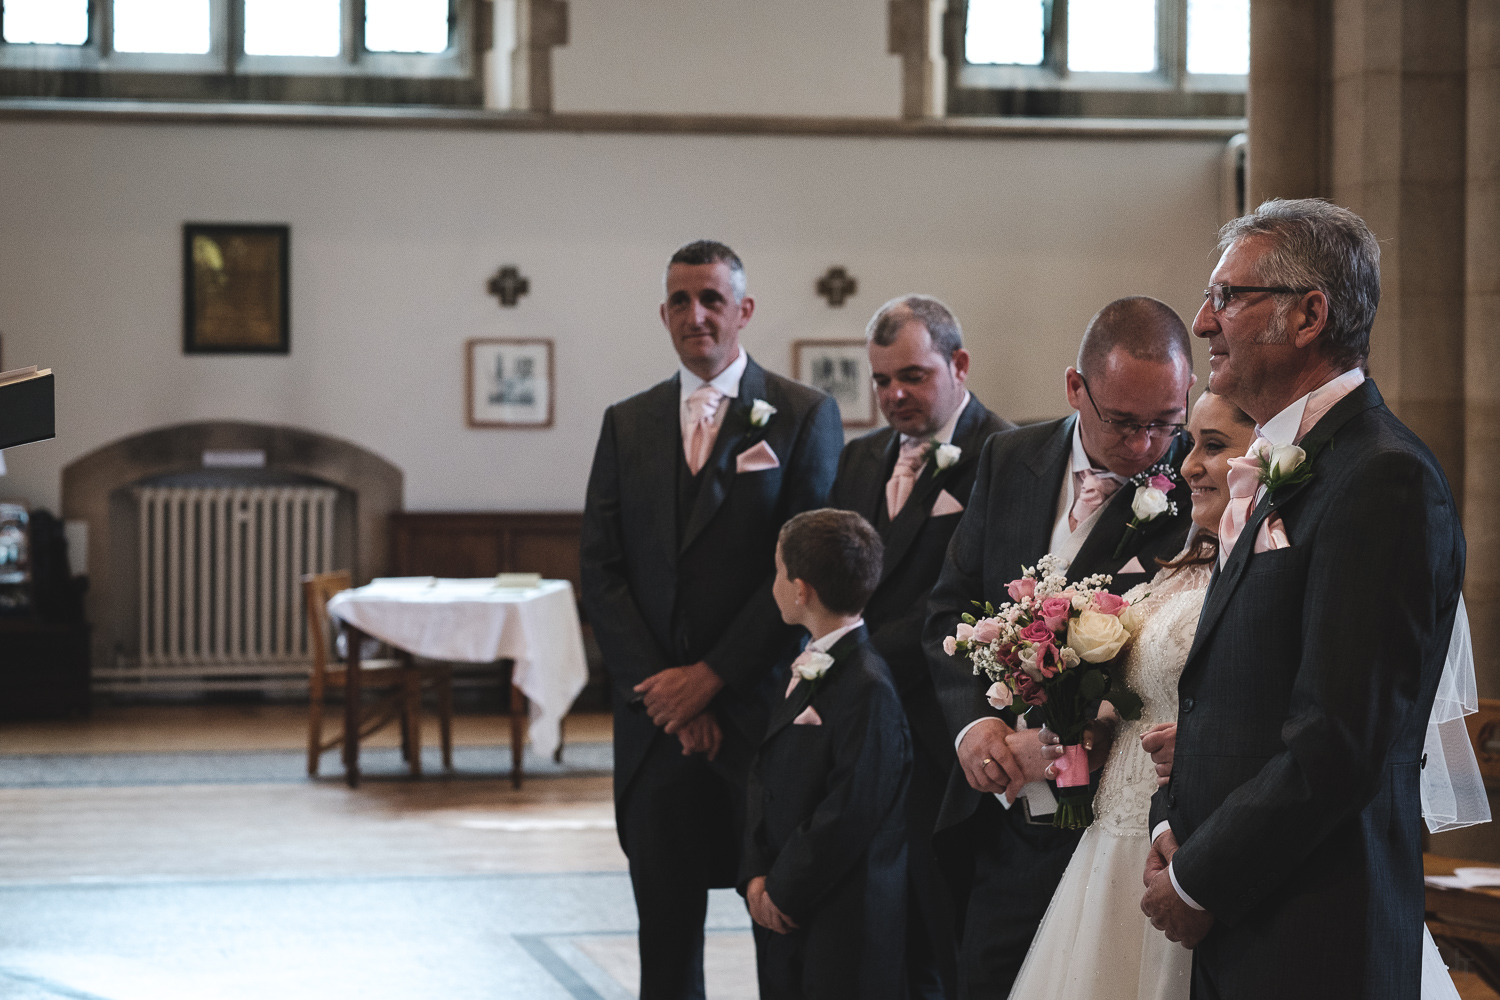 st michael and all angels wedding photography-34.jpg